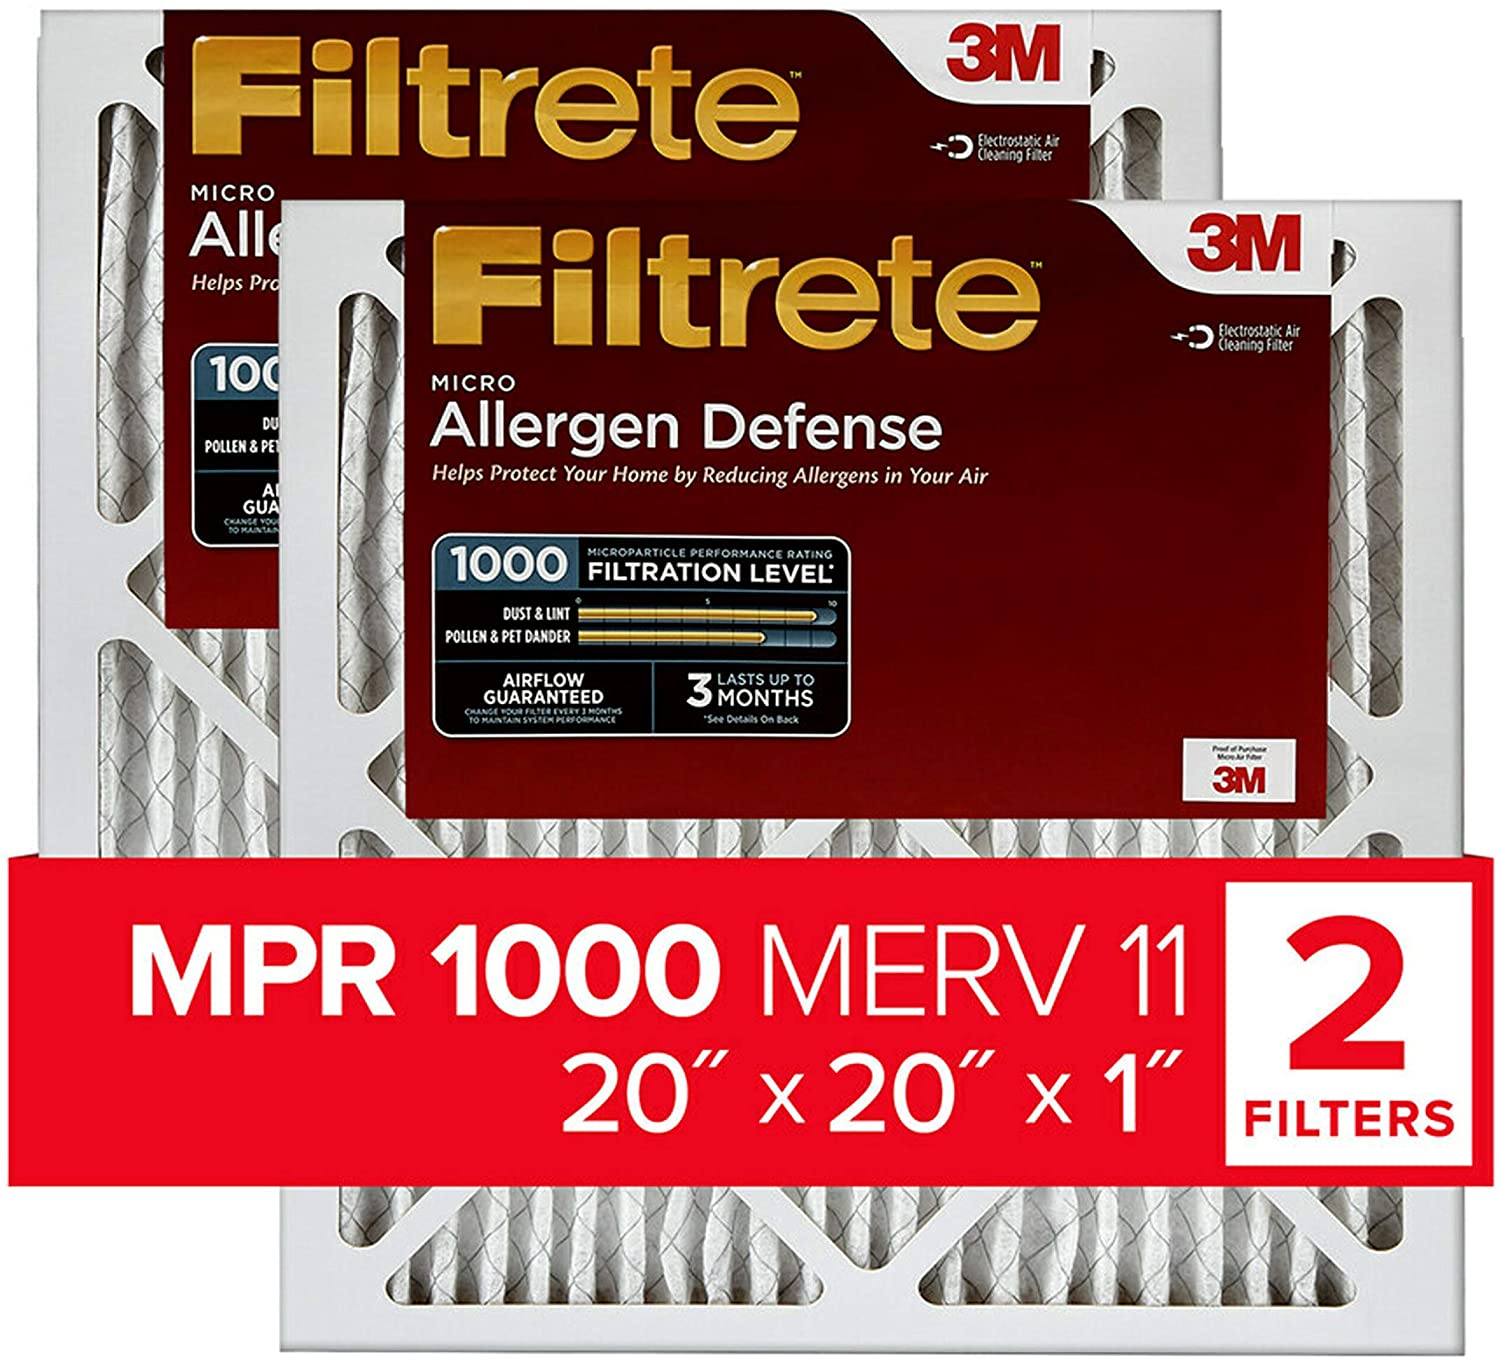 Filtrete 20x20x1, AC Furnace Air Filter, MPR 1000, Micro Allergen Defense, 2-Pack (exact dimensions 19.719 x 19.719 x 0.84) - Replacement Furnace Filters -